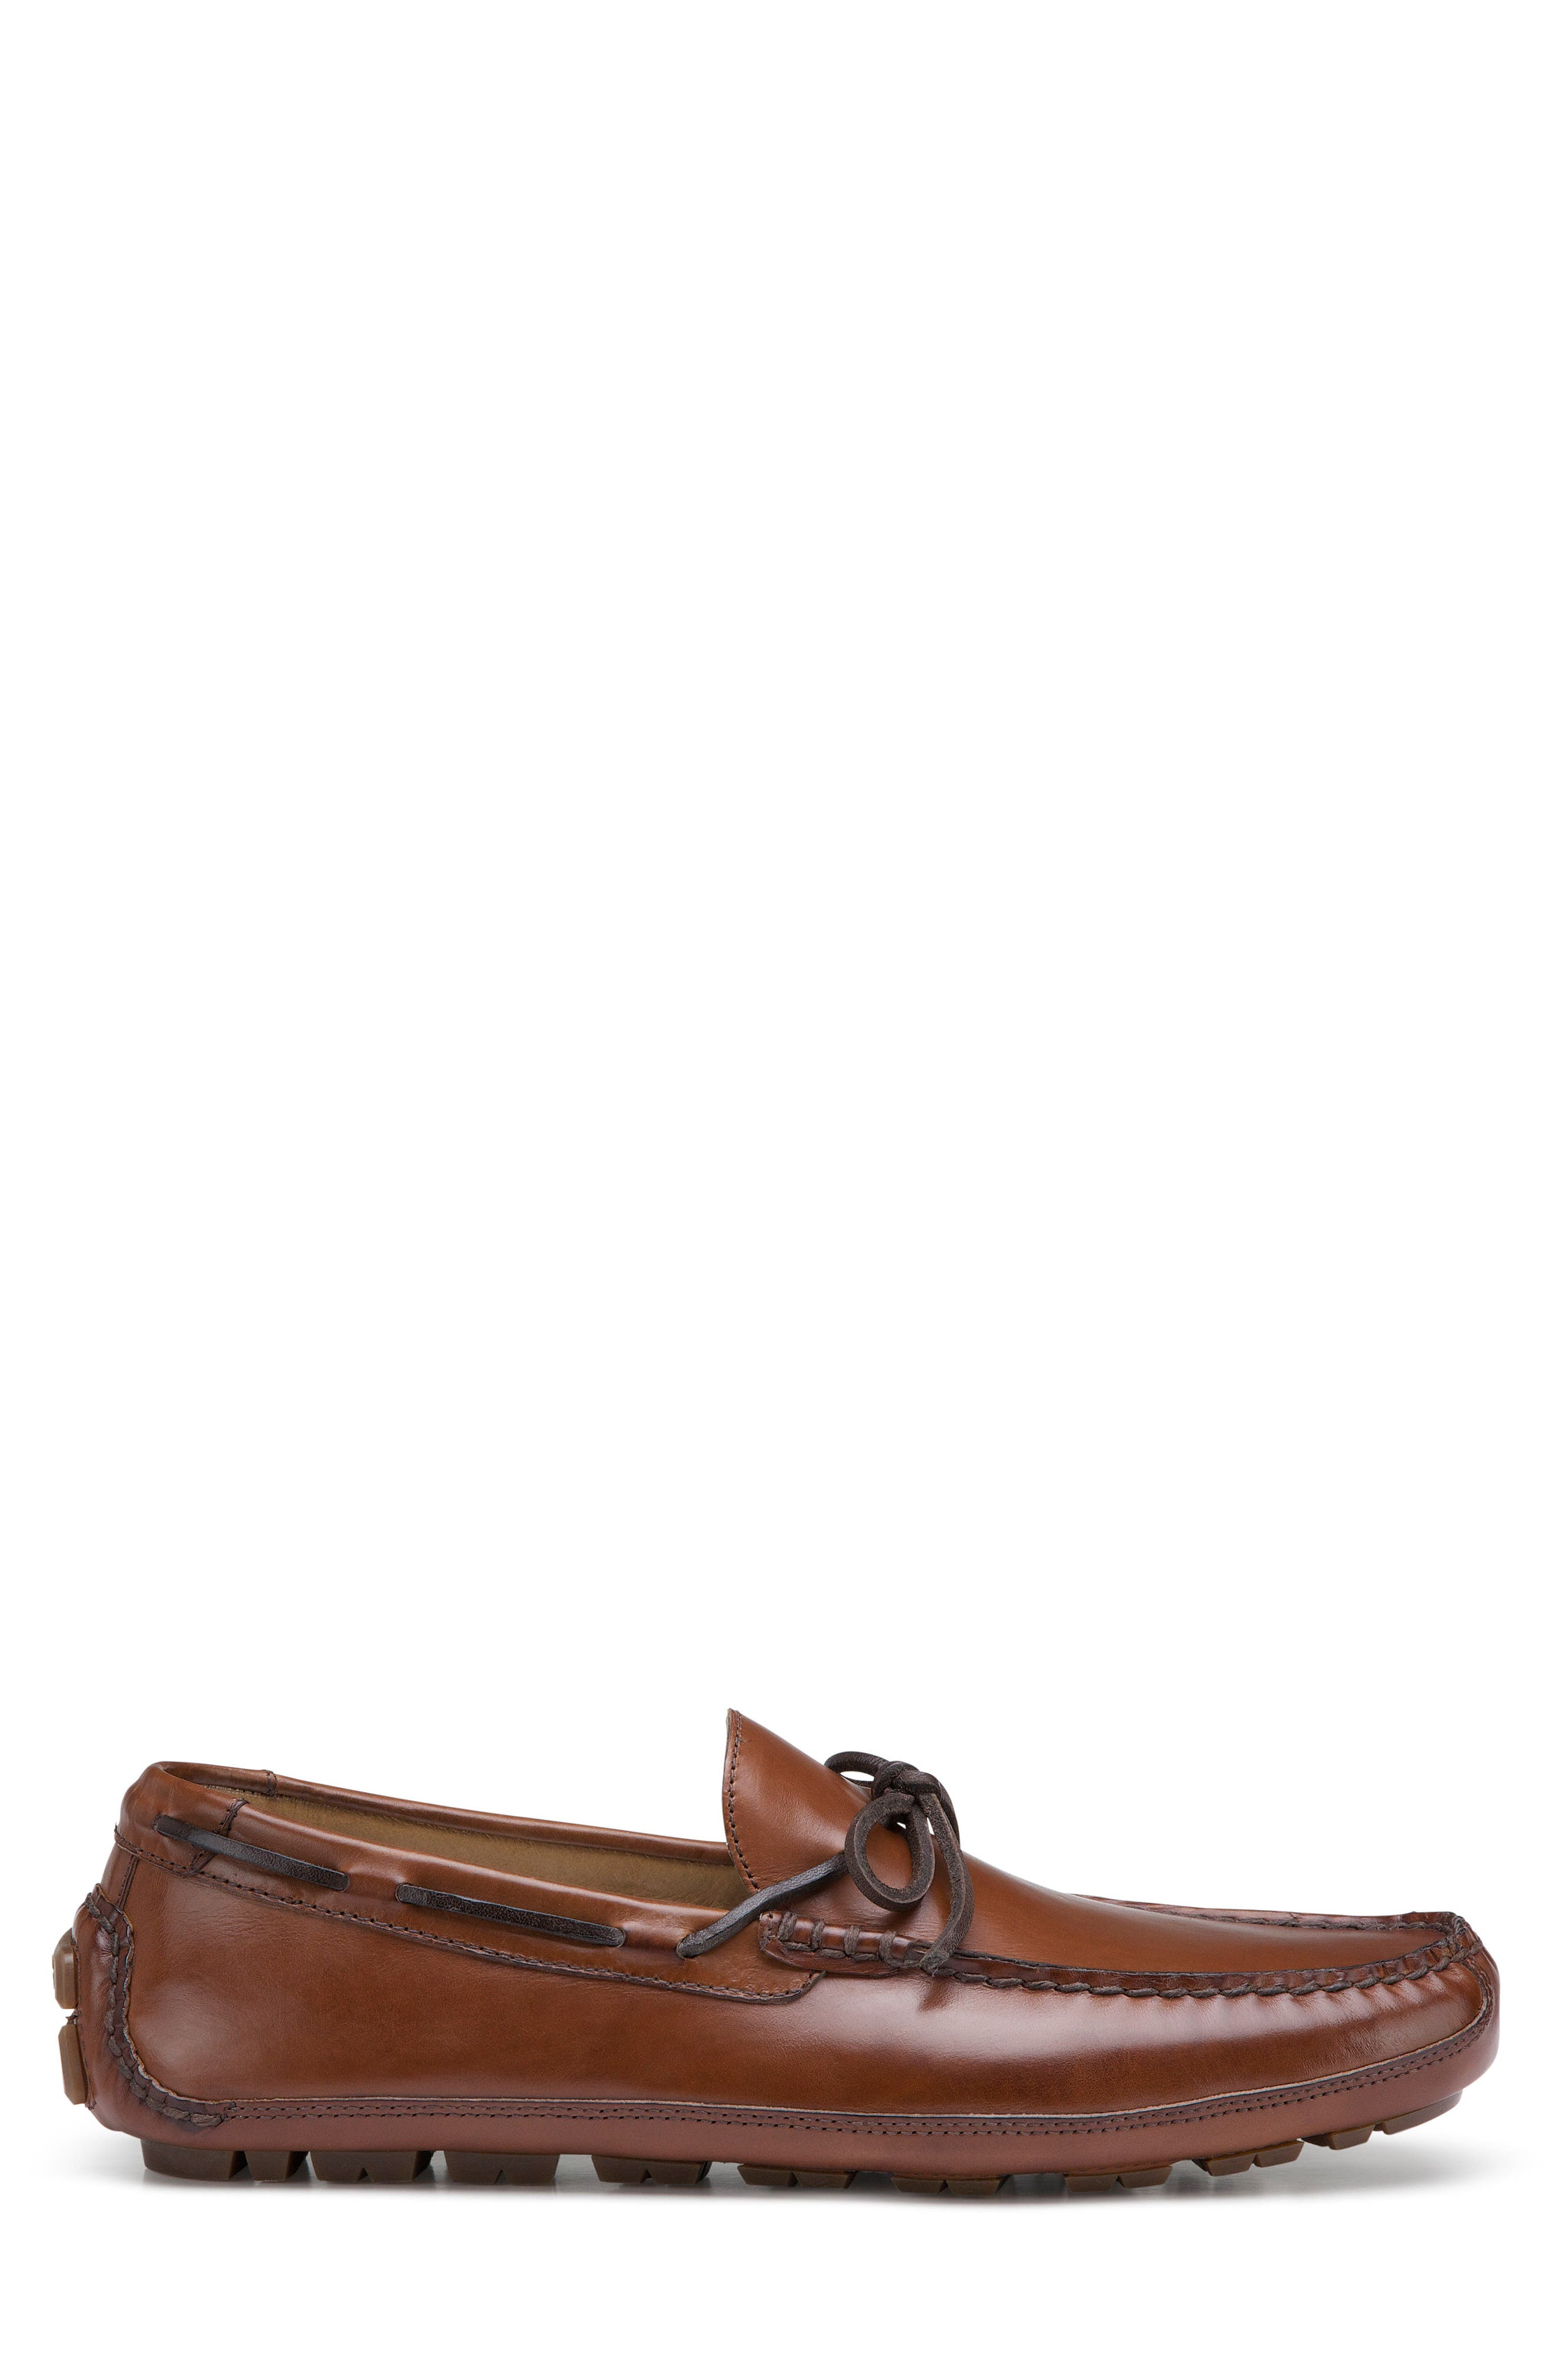 Dillion Driving Loafer,                             Alternate thumbnail 2, color,                             BROWN LEATHER